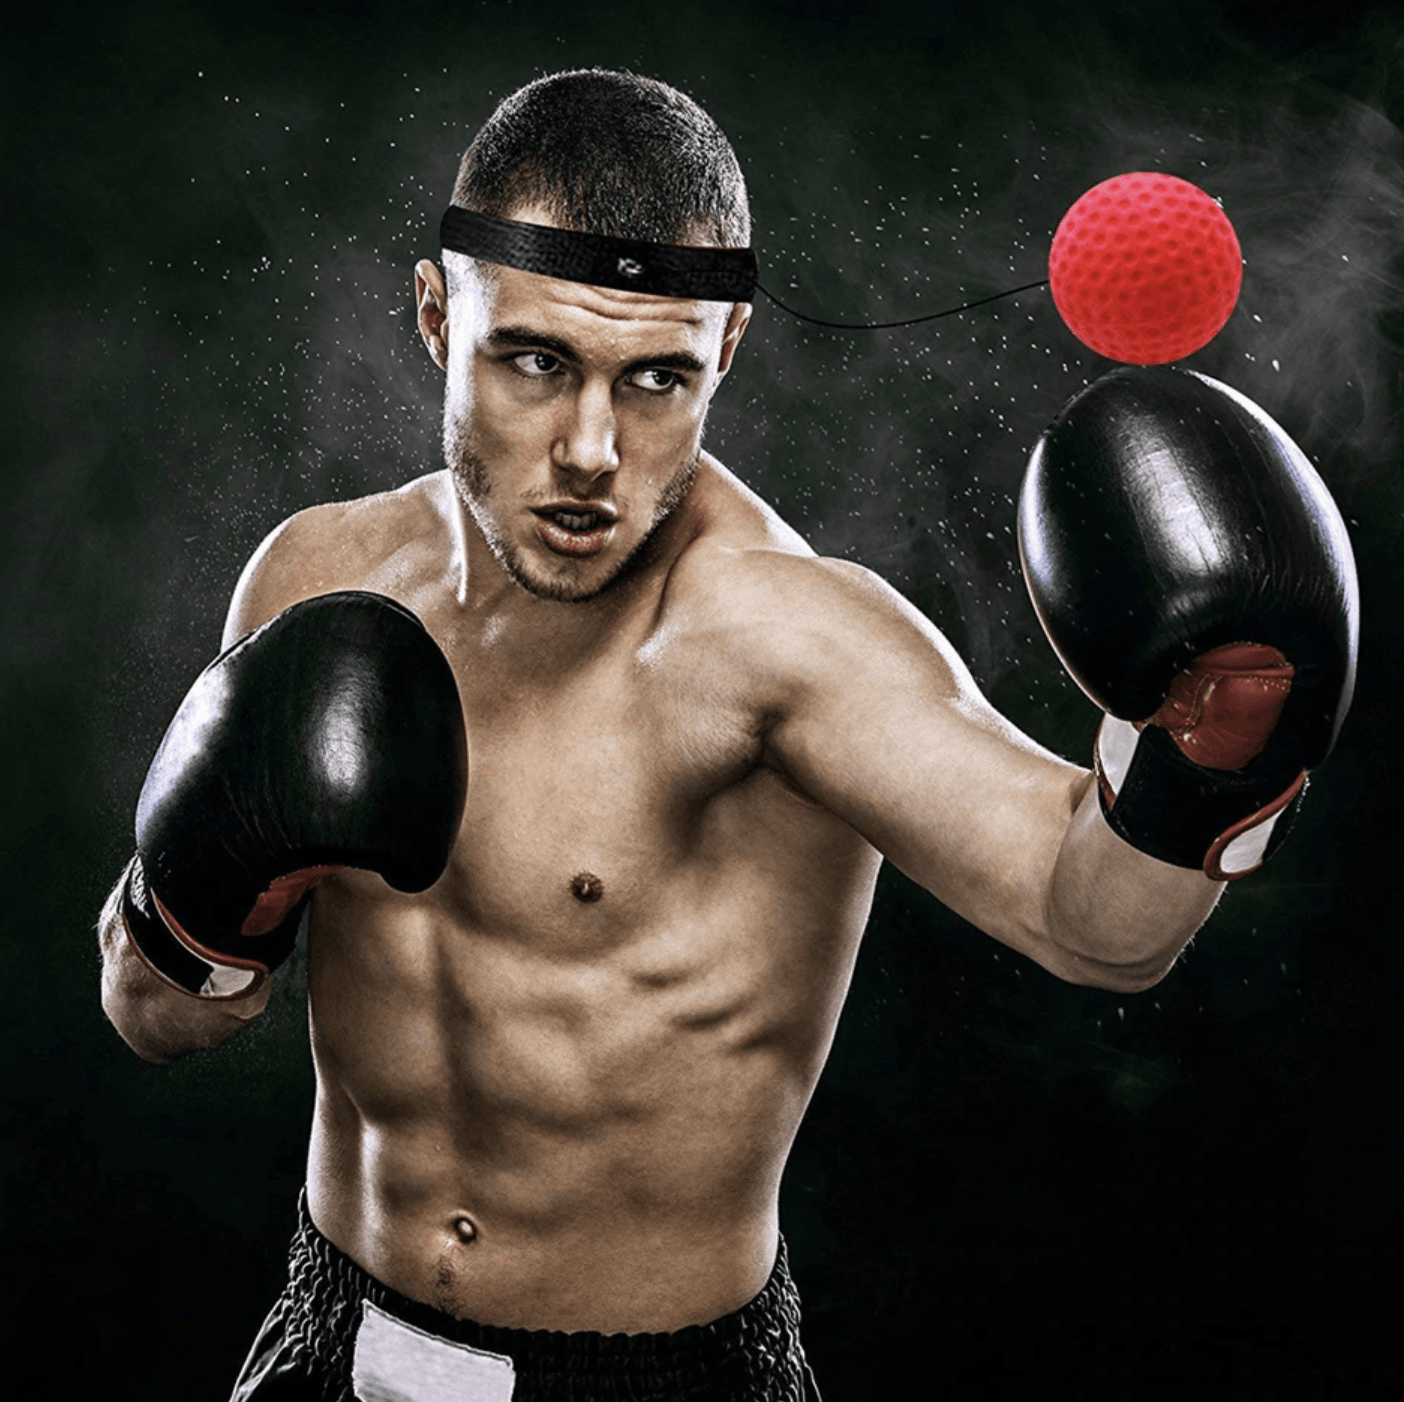 Professional Boxing Reflex Ball